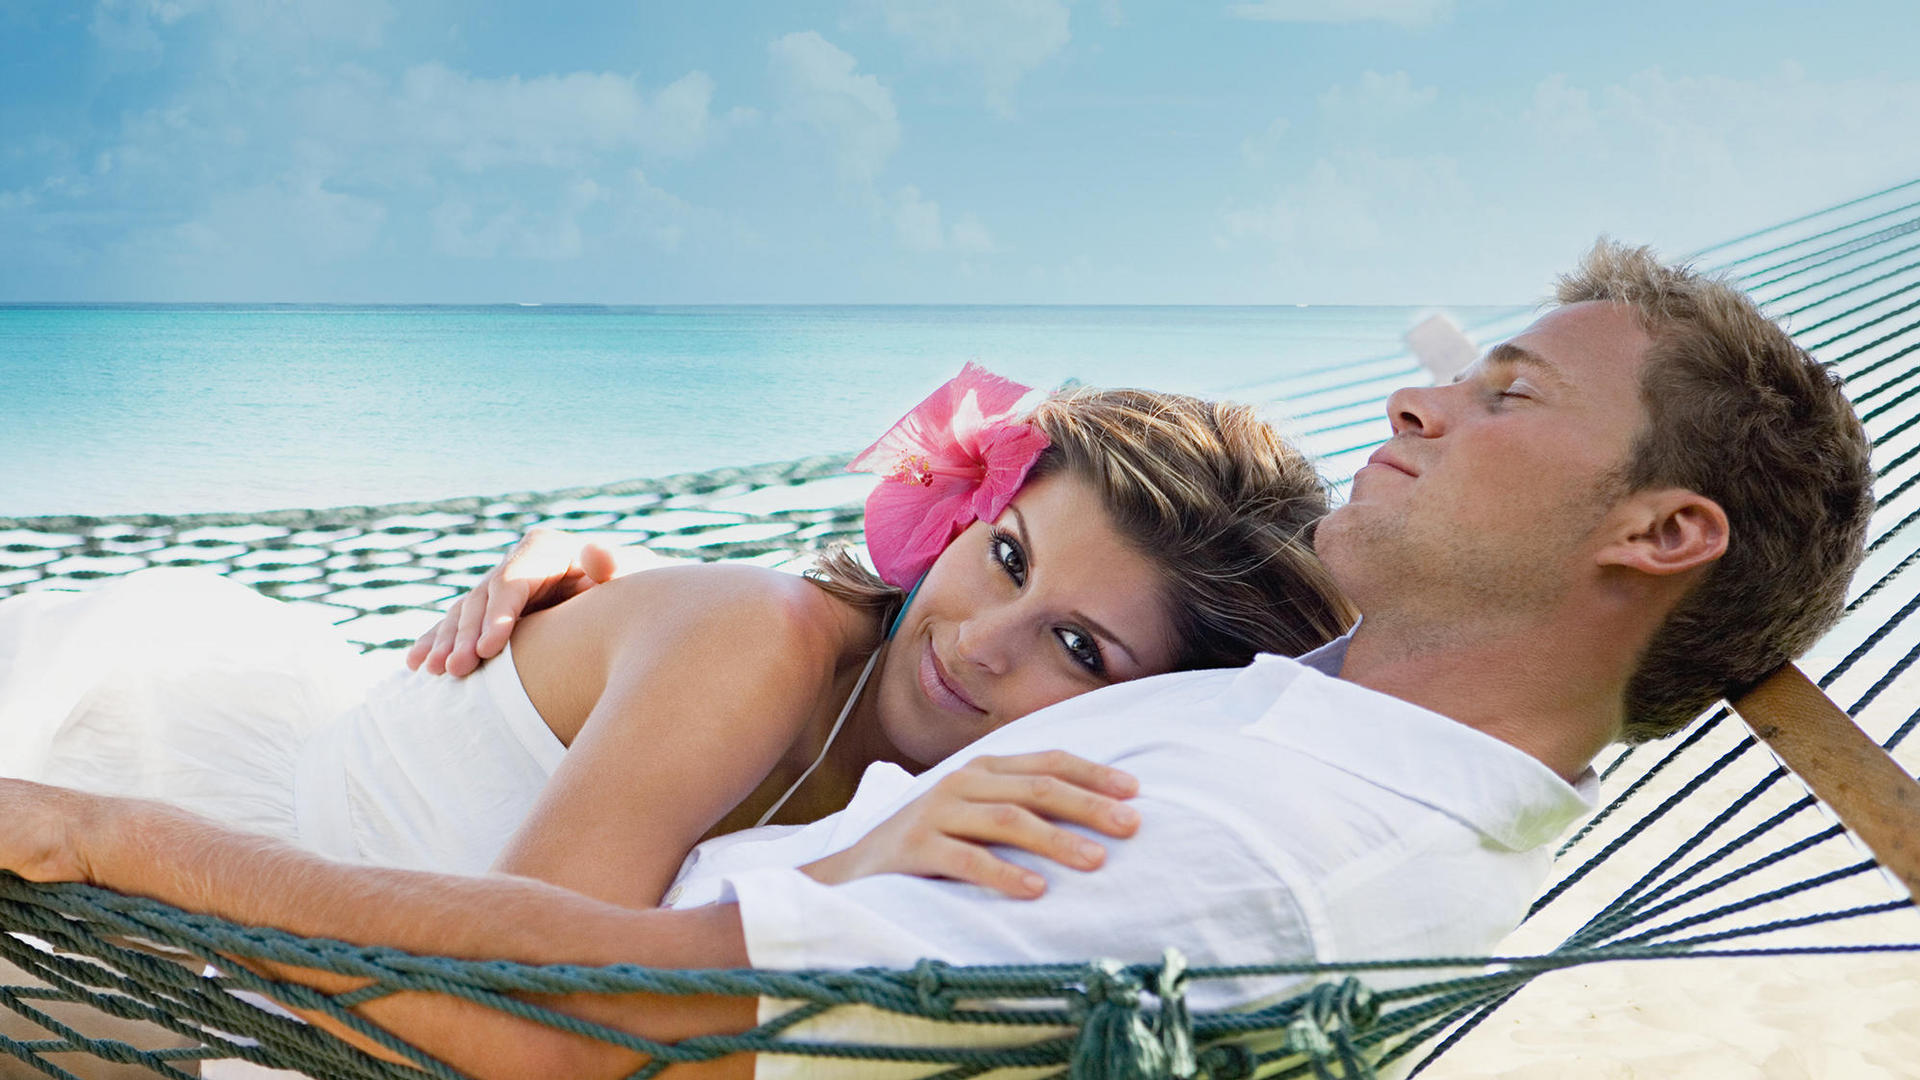 Couple lying together on a hammock on beach